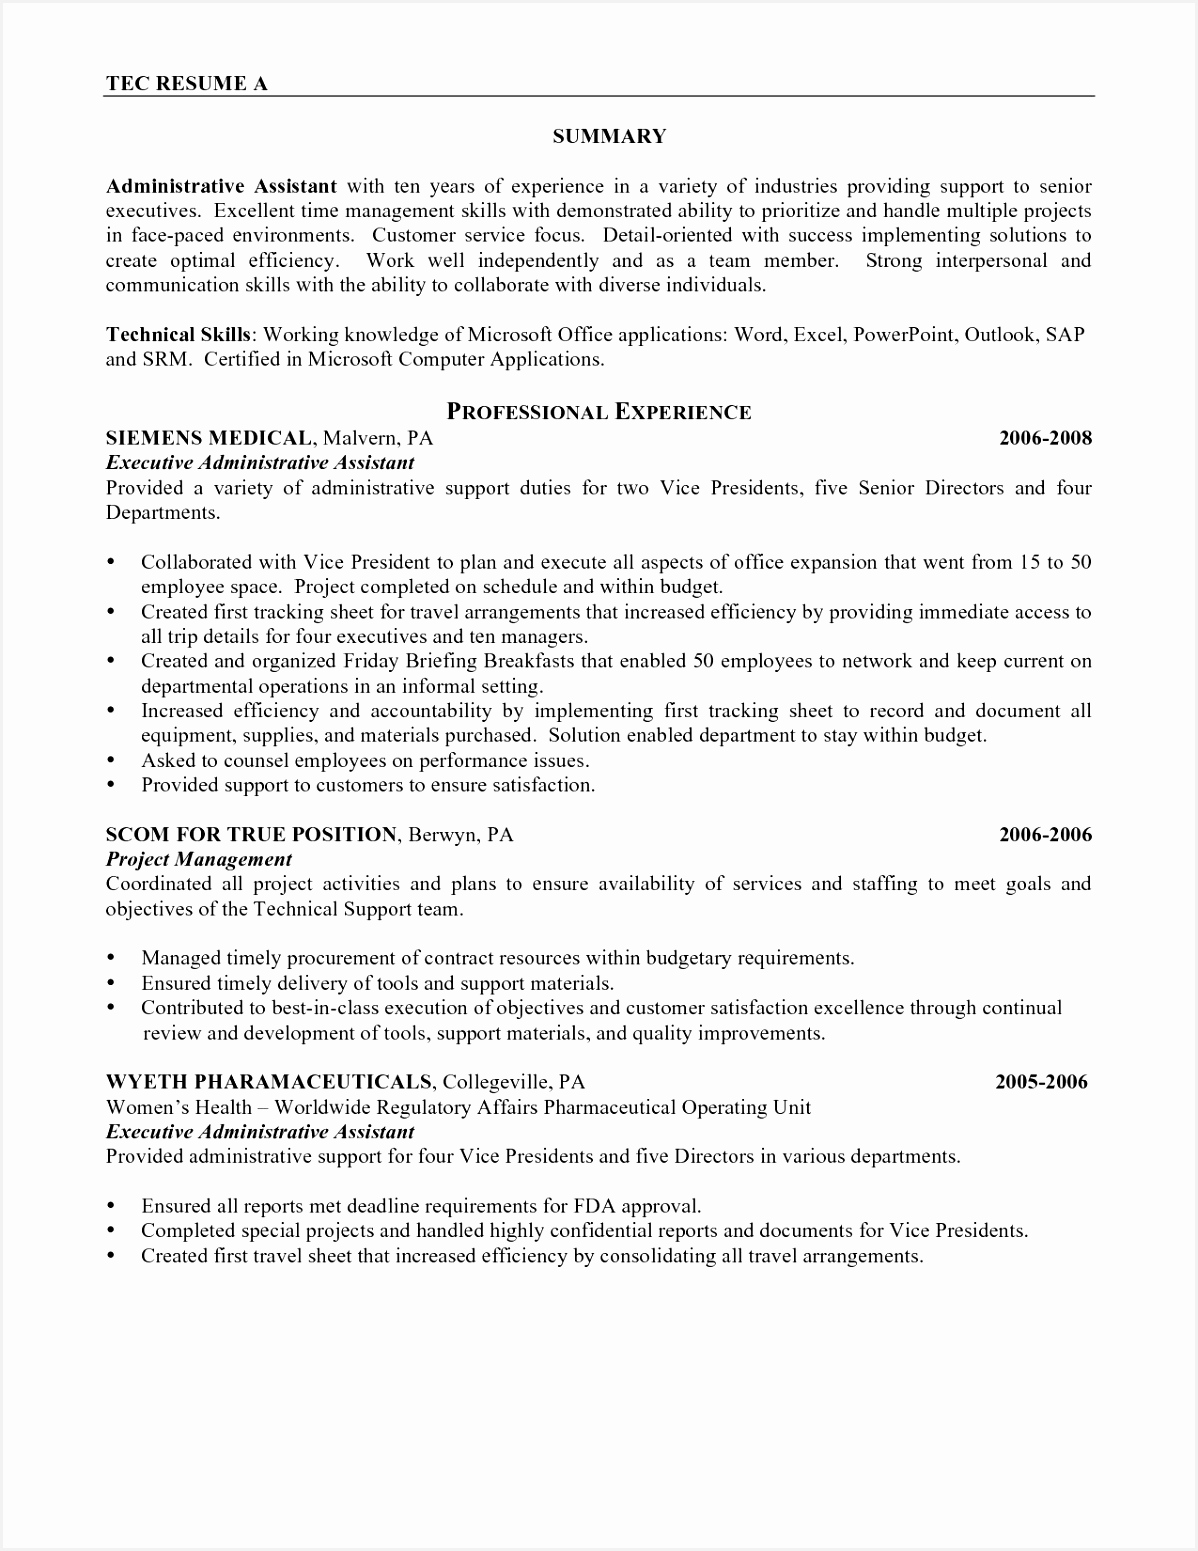 Resume Examples Executive assistant Tsynq Luxury Best Admin Resume Sample New Administrative assistant Resume Of 5 Resume Examples Executive assistant